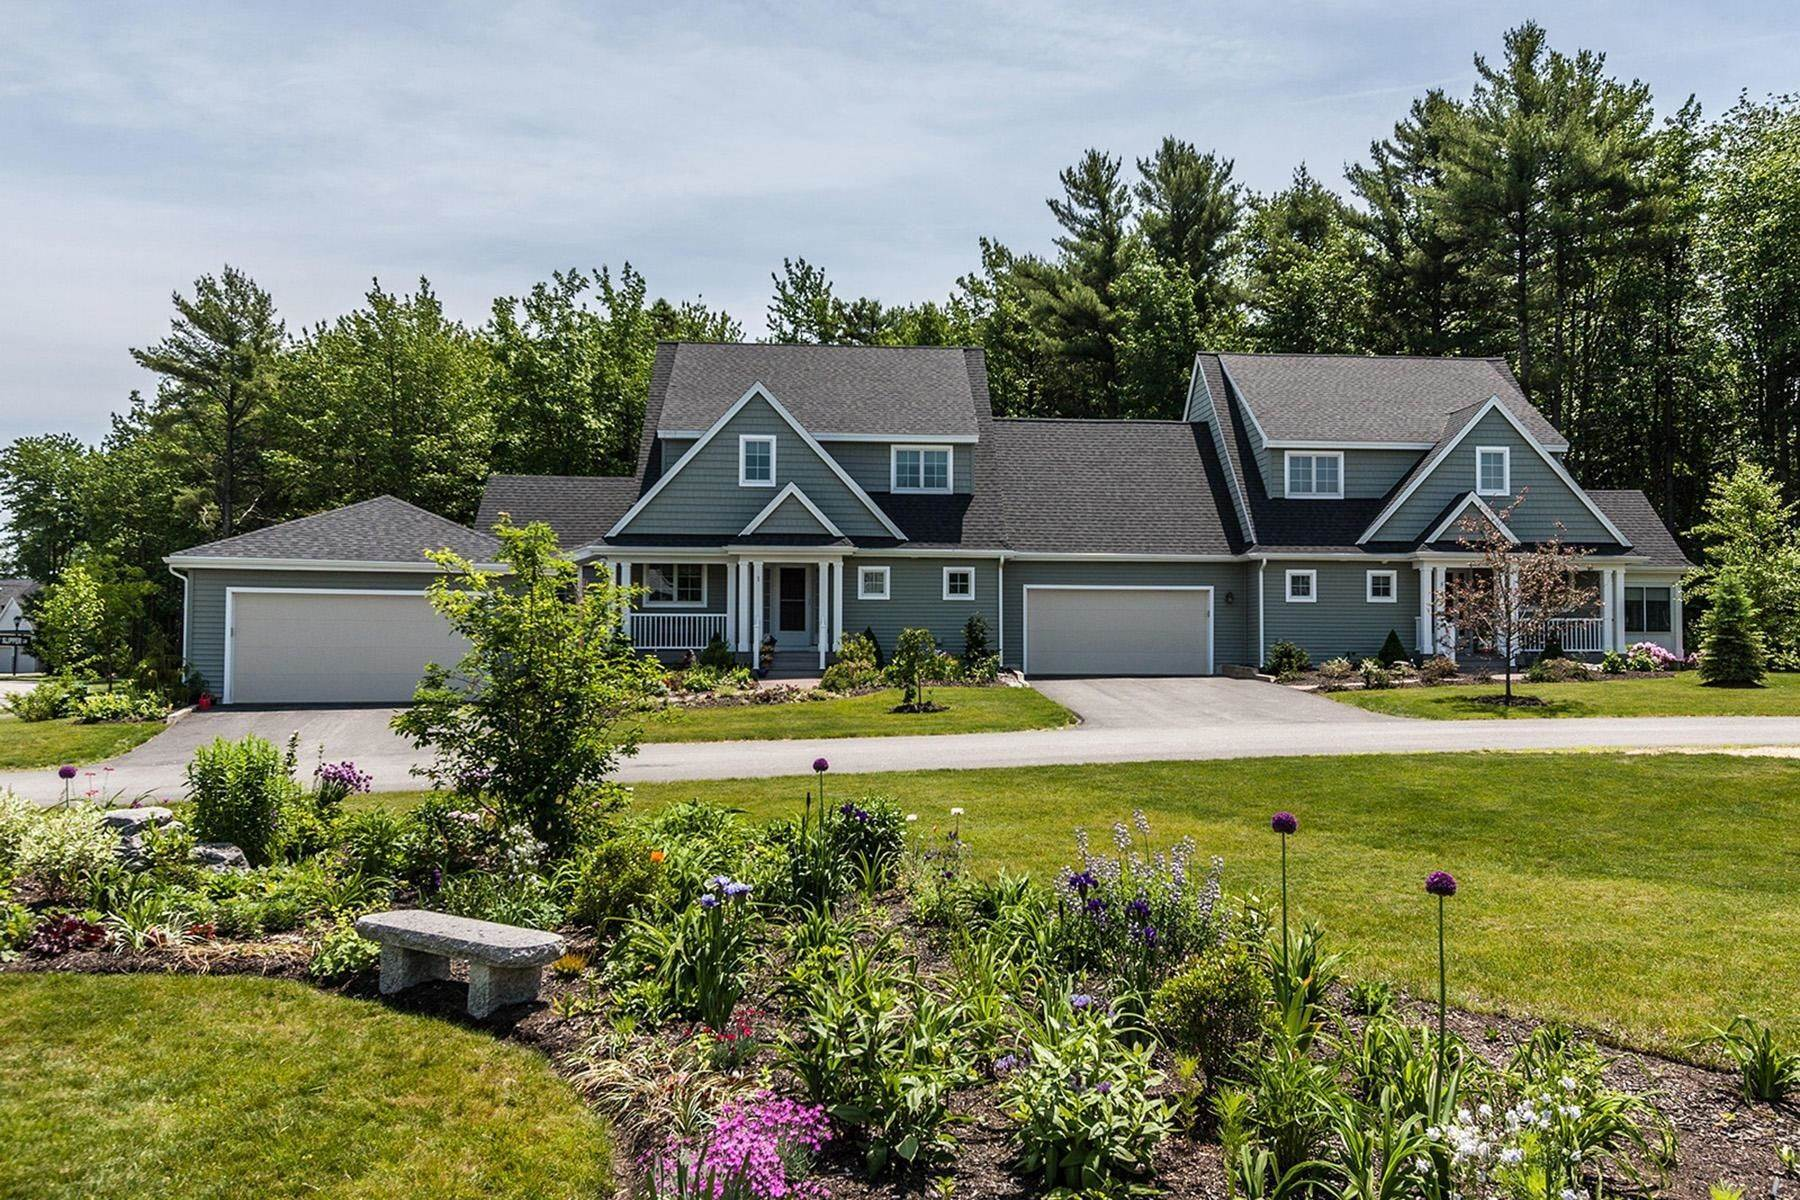 Condominiums for Sale at 4 Foxglove Way, 90 Brunswick, Maine 04011 United States